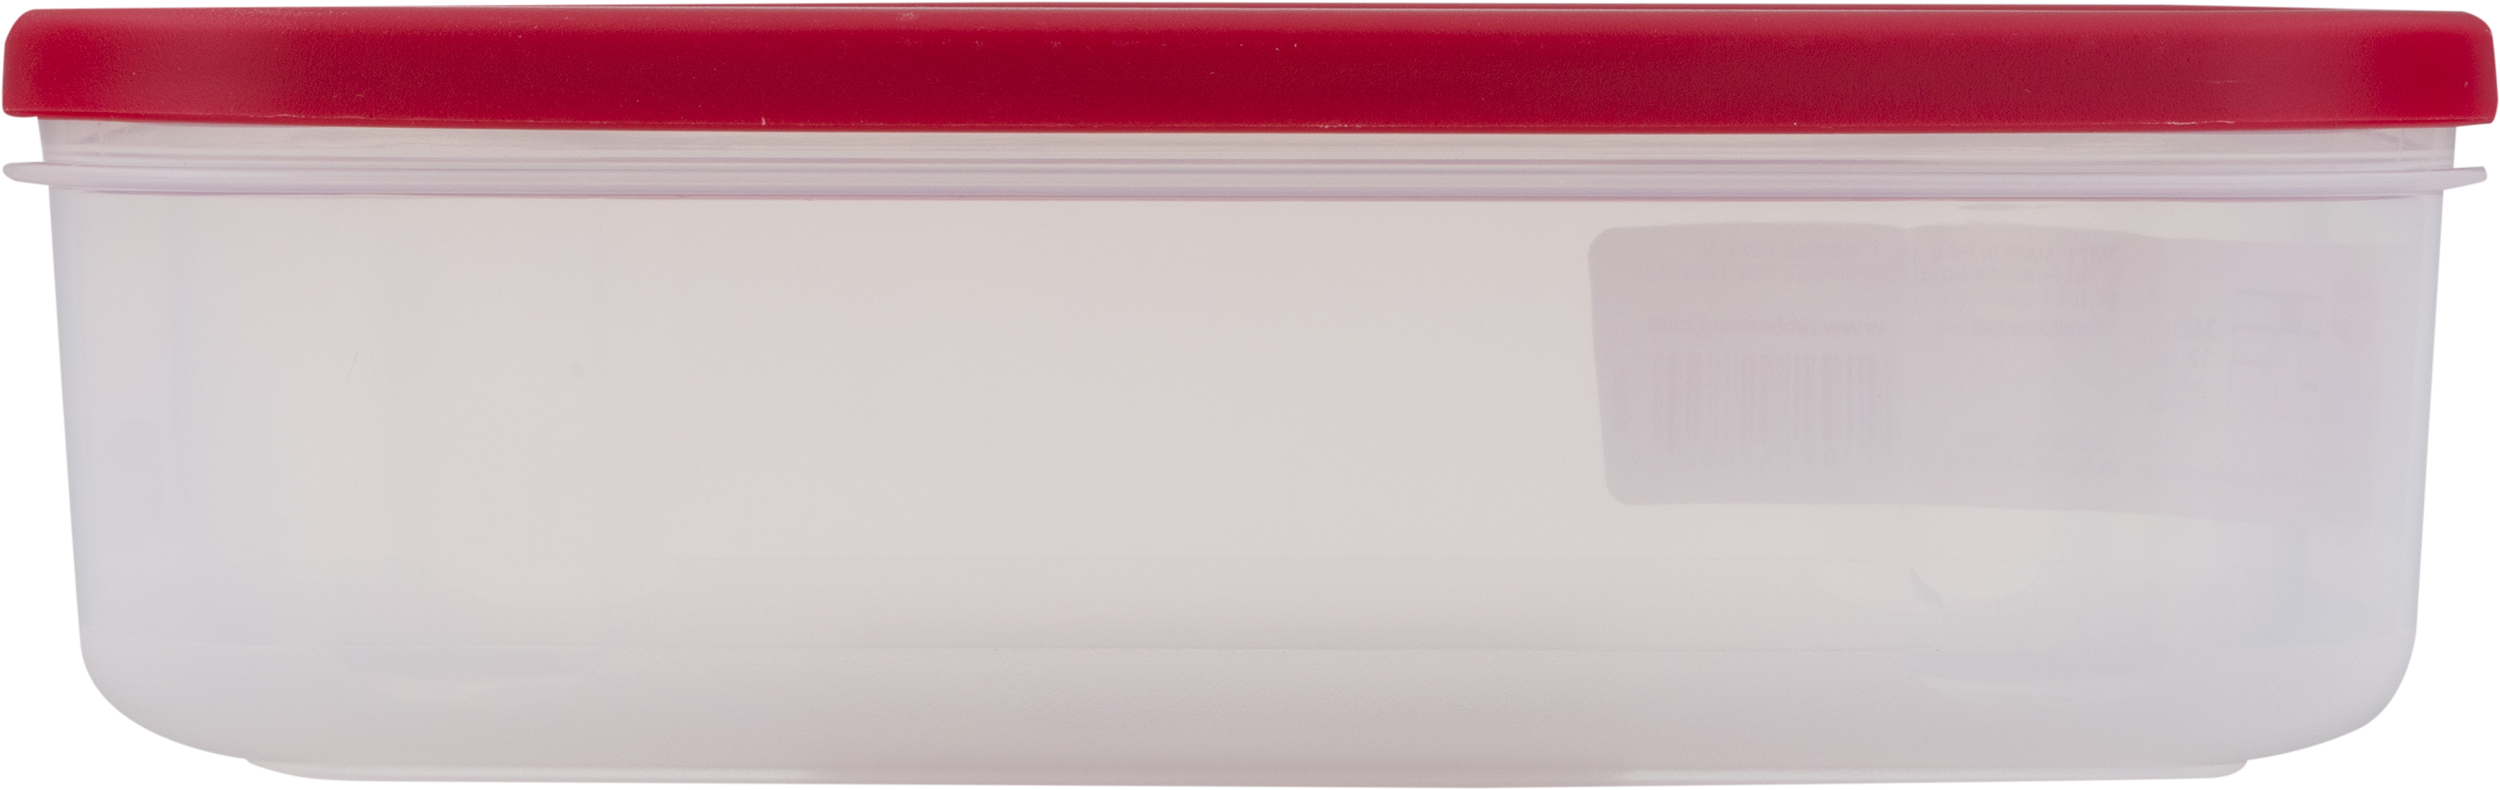 ... Rubbermaid Modular Food Storage Canister ...  sc 1 st  Toddler Travel Bed & Rubbermaid Modular Food Storage Canister Racer Red - Best Food Storage